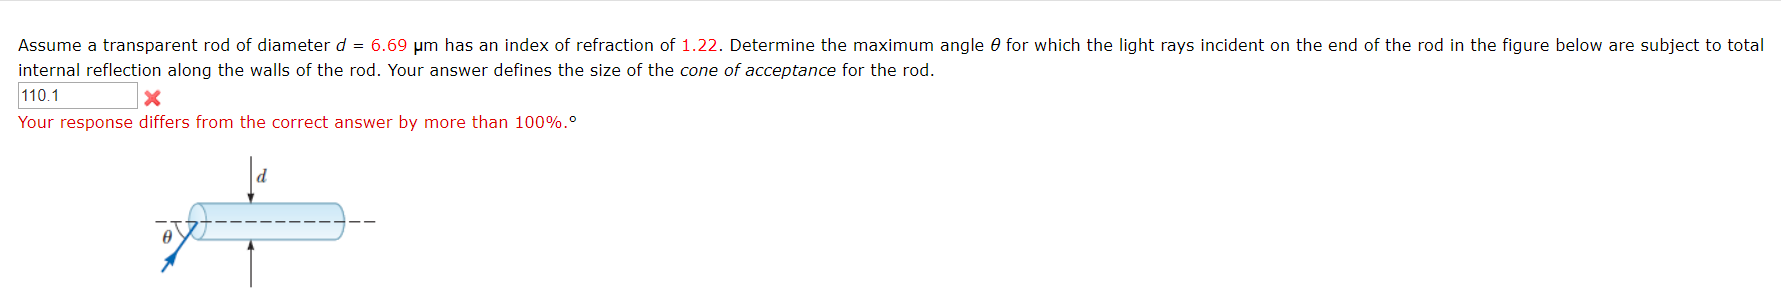 Assume a transparent rod of diameter d = 6.69 µm has an index of refraction of 1.22. Determine the maximum angle 0 for which the light rays incident on the end of the rod in the figure below are subject to total internal reflection along the walls of the rod. Your answer defines the size of the cone of acceptance for the rod. 110.1 Your response differs from the correct answer by more than 100%.°